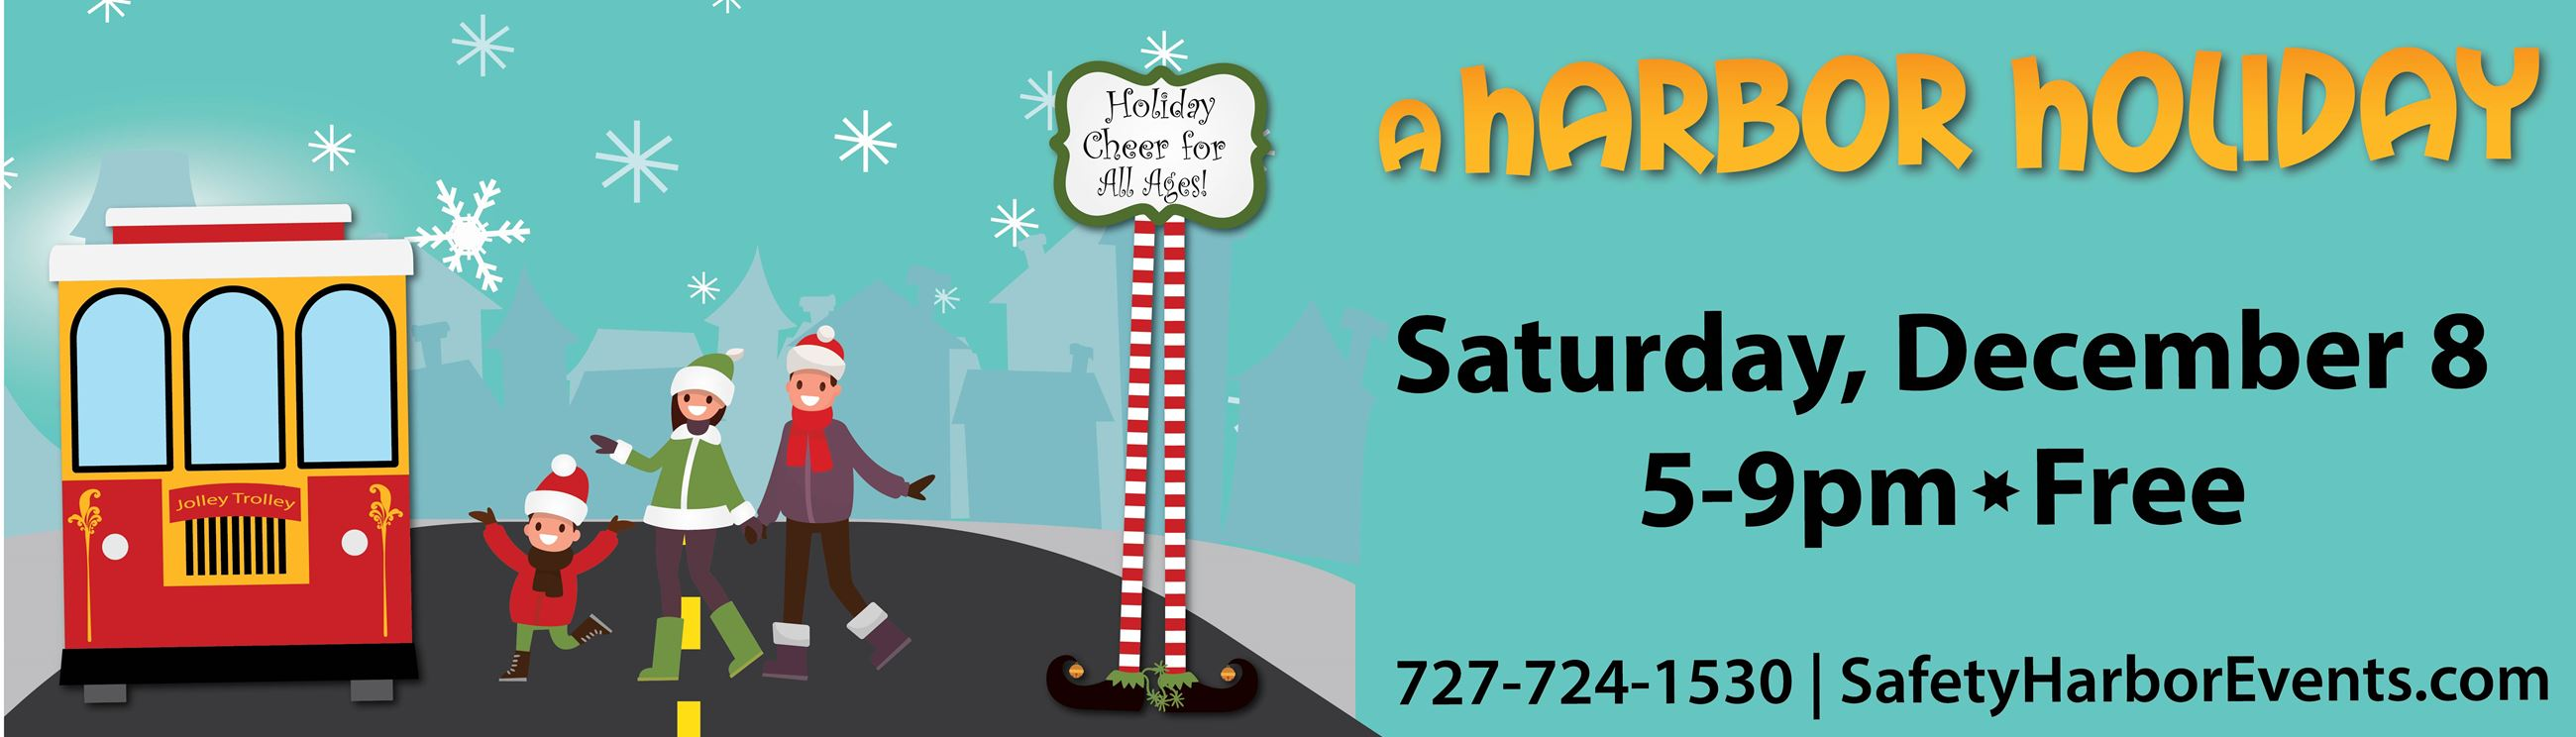 A_Harbor_Holiday_Web_Banner